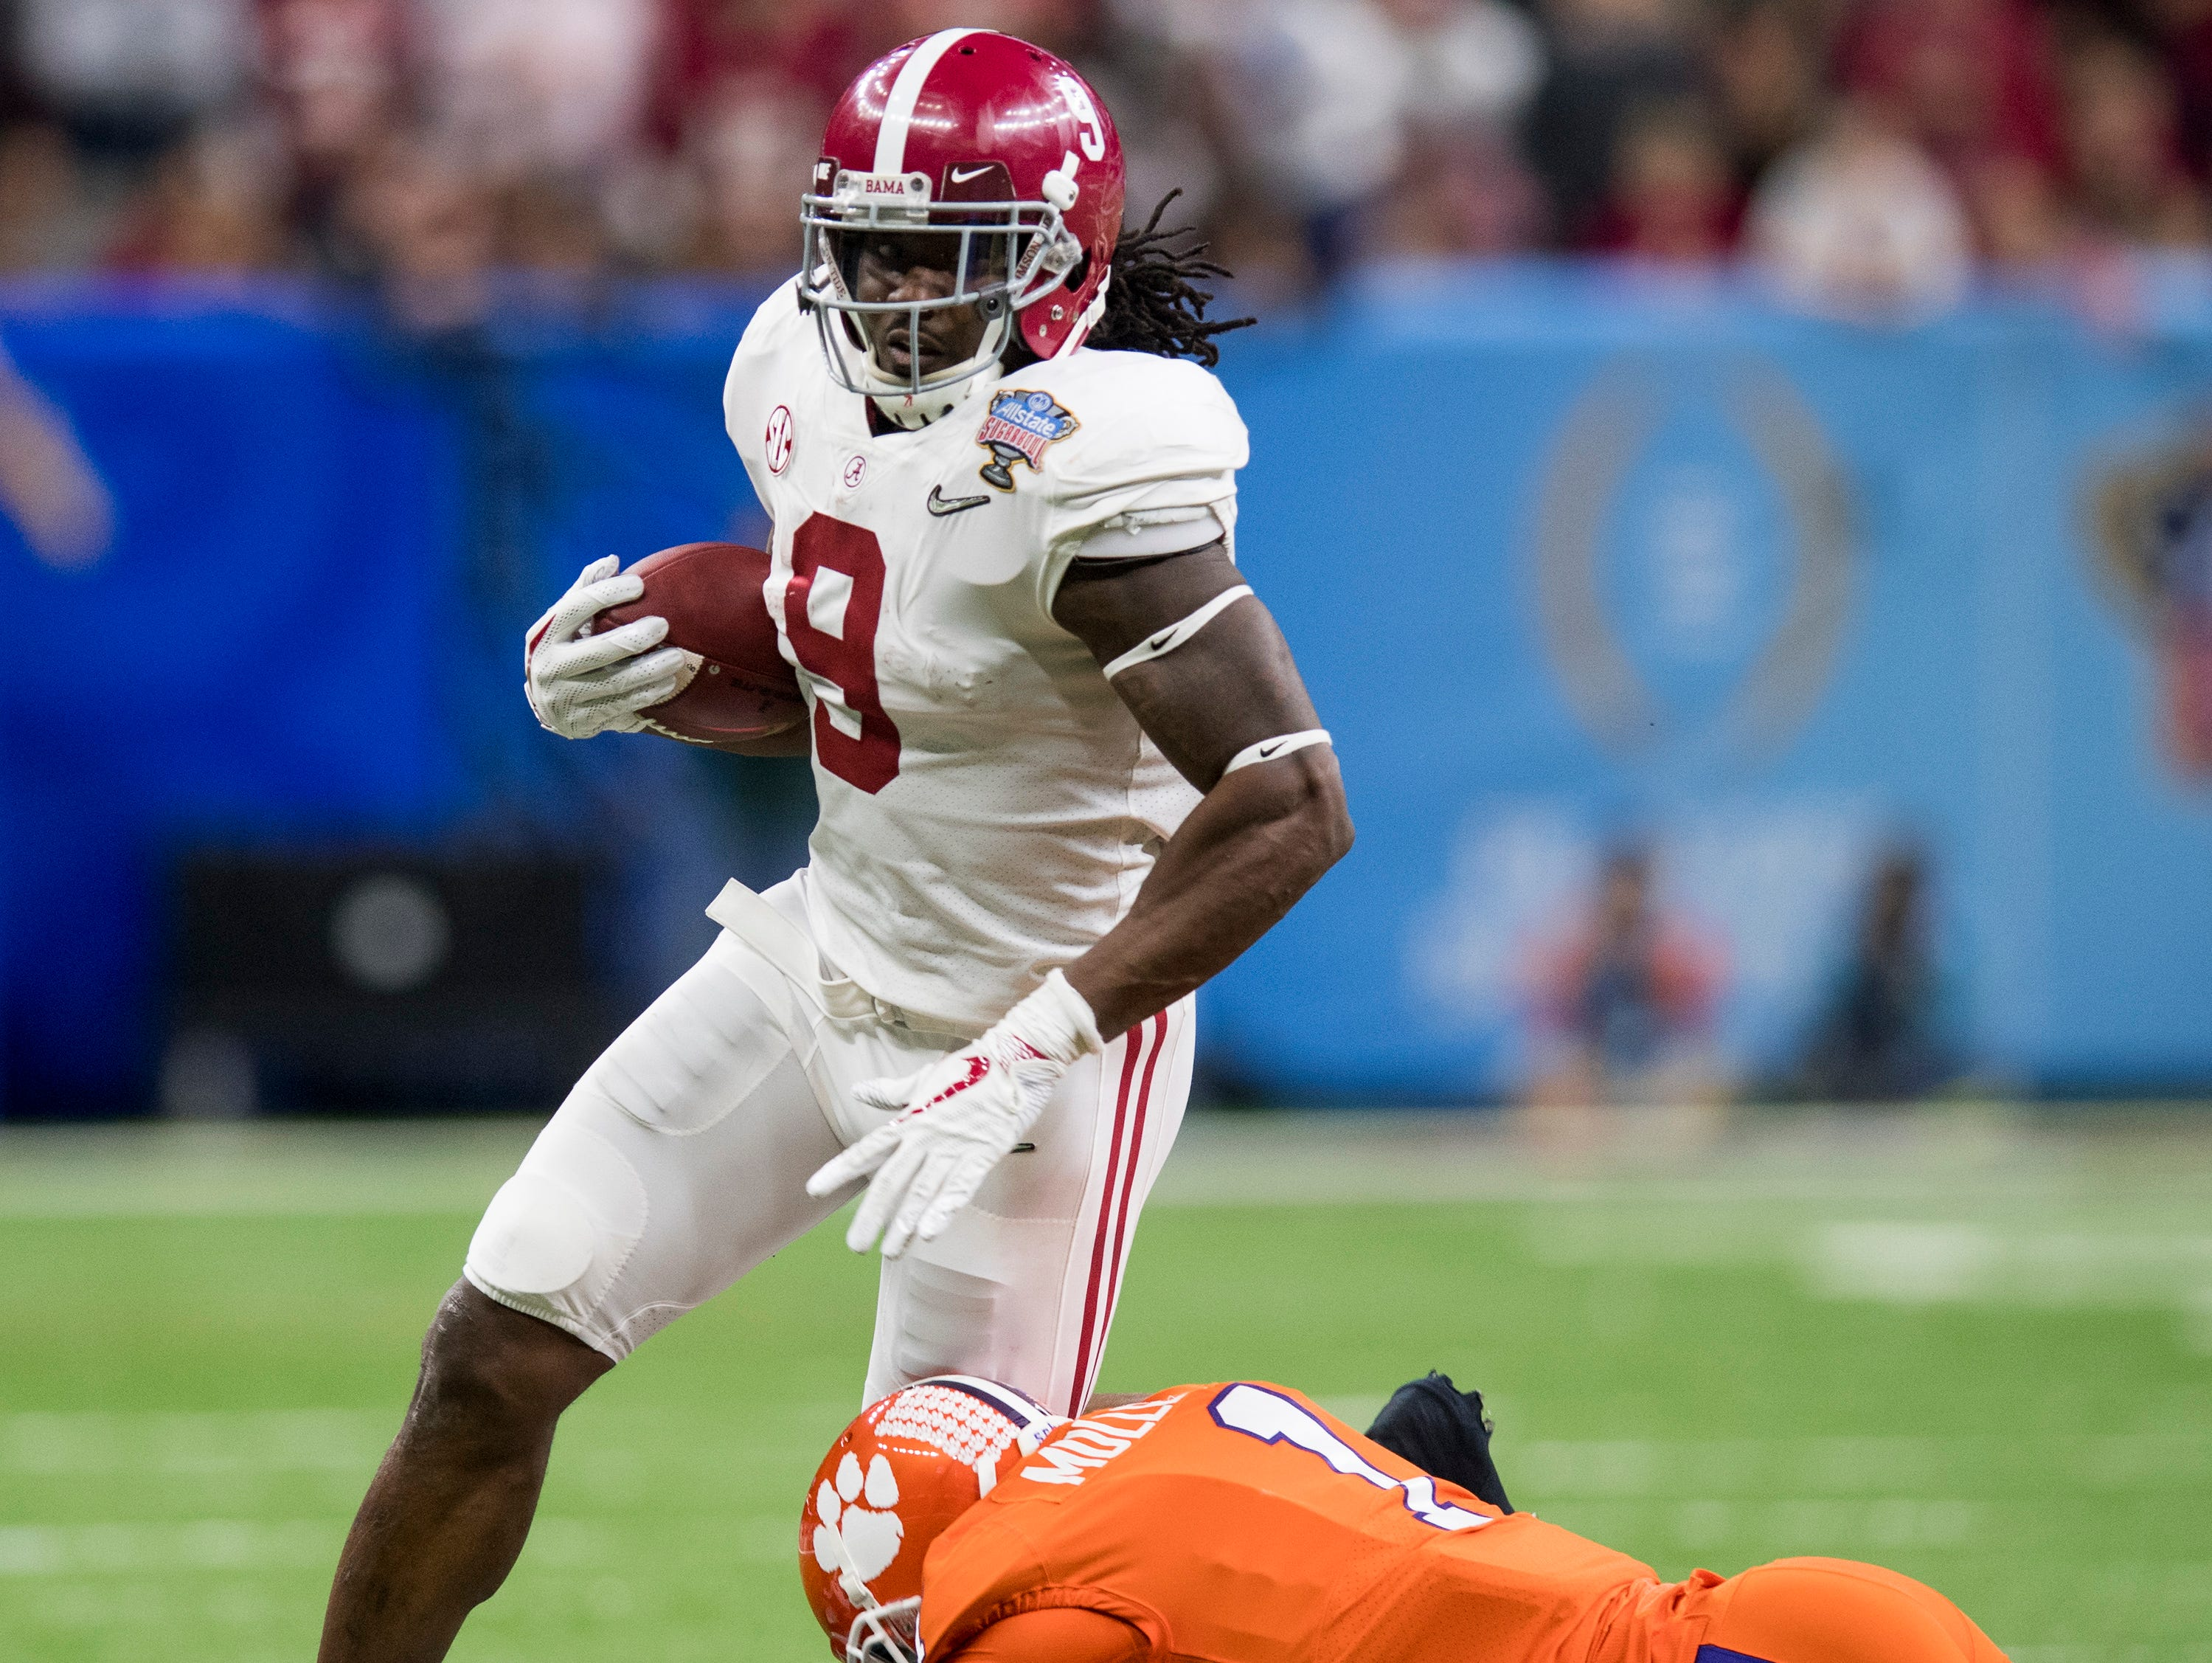 Alabama running back Bo Scarbrough (9) gets by Clemson corner back Trayvon Mullen (1) in first half action in the Sugar Bowl at the Superdome in New Orleans, La. on Monday January 1, 2018.